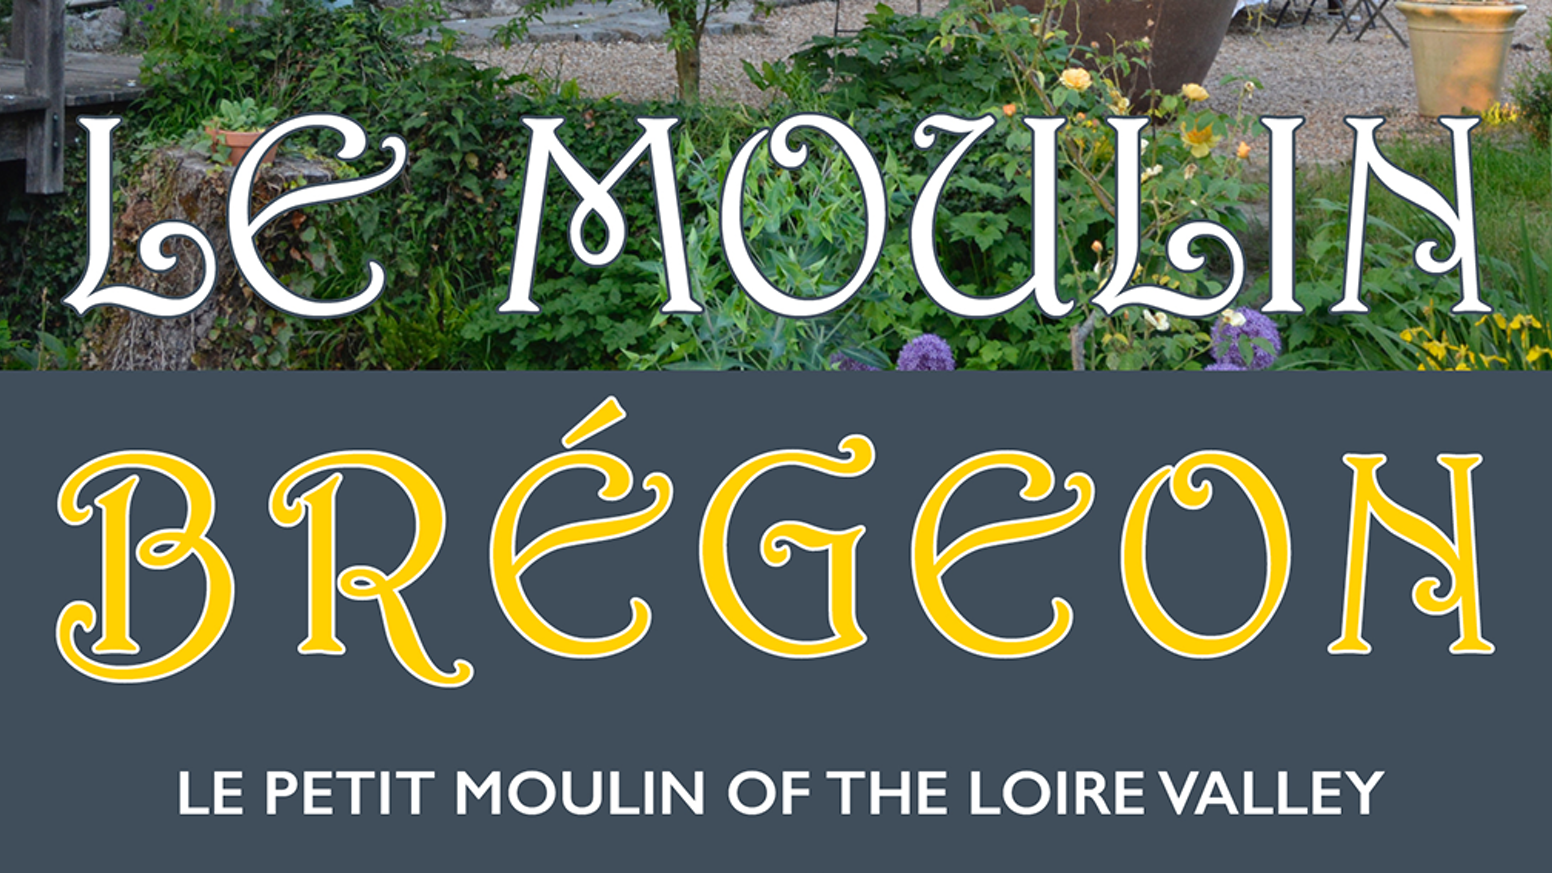 A cookbook written by Kathryn Gordon, with chefs Bernard Levenez & Pascal Merillou, for Le Moulin Bregeon Hotel. Thank you for helping us to self-publish and celebrate the first 20 years at Le Moulin Bregeon.